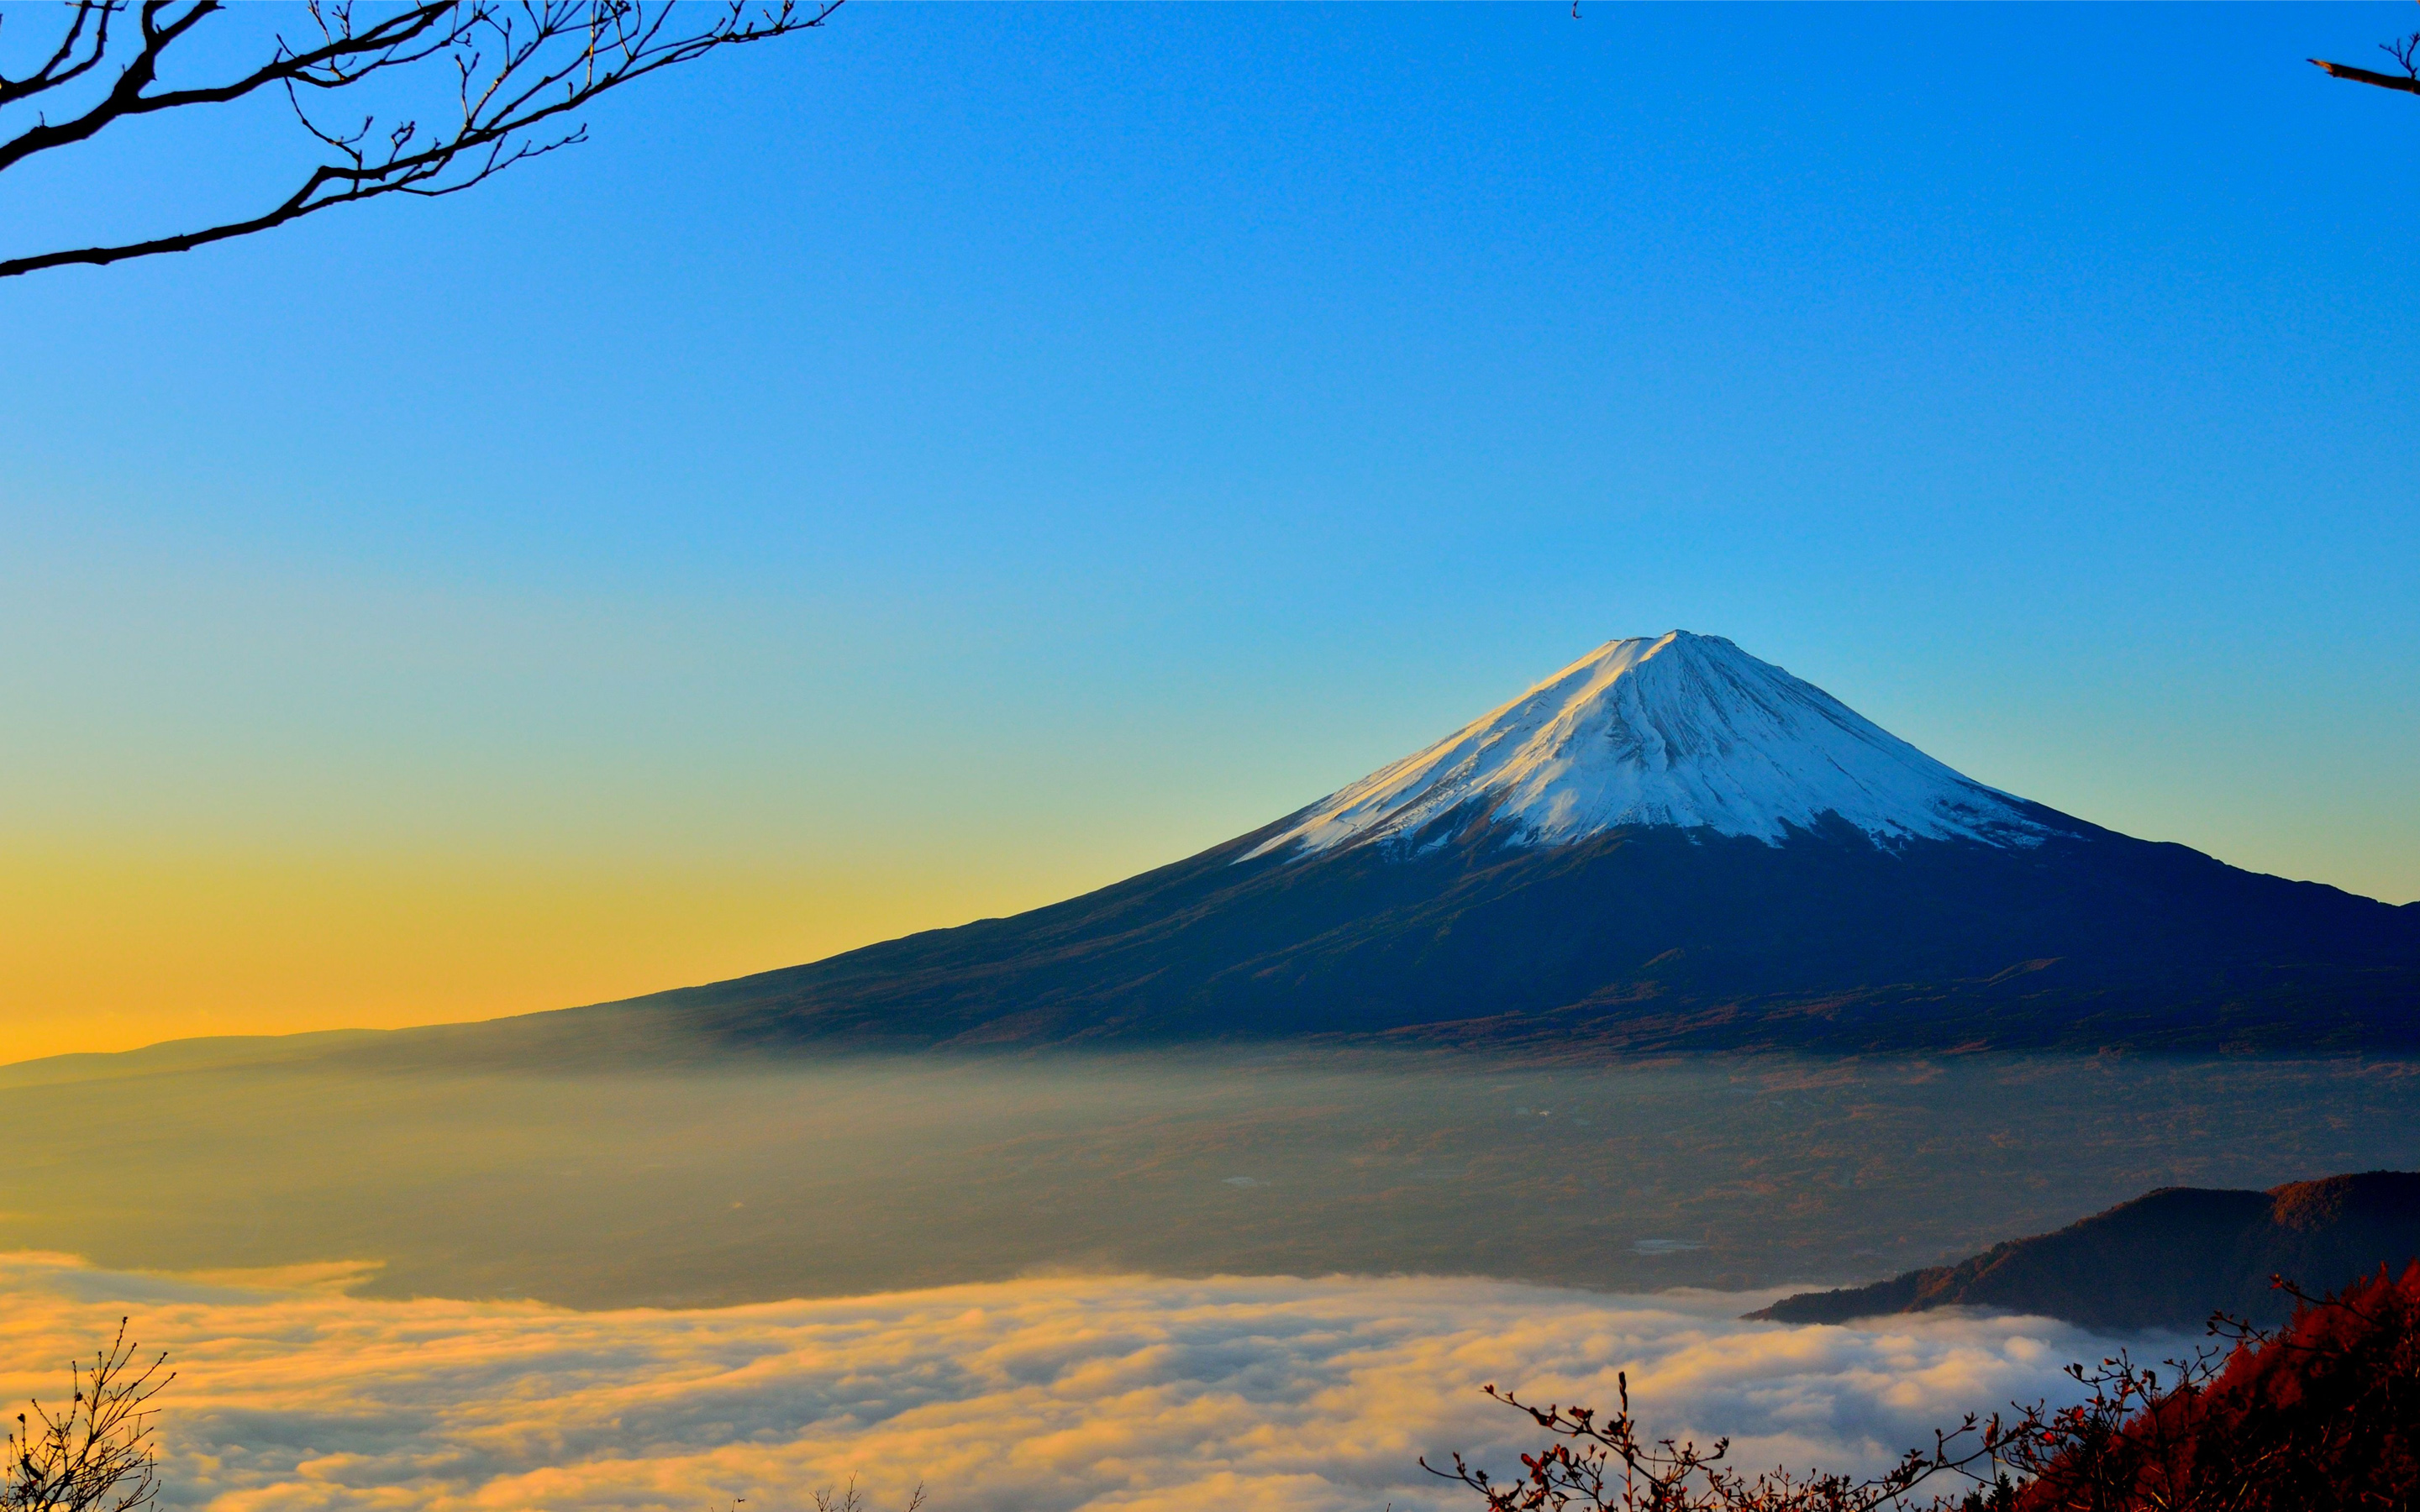 Mount Fuji Wallpapers and Background Images   stmednet 2880x1800